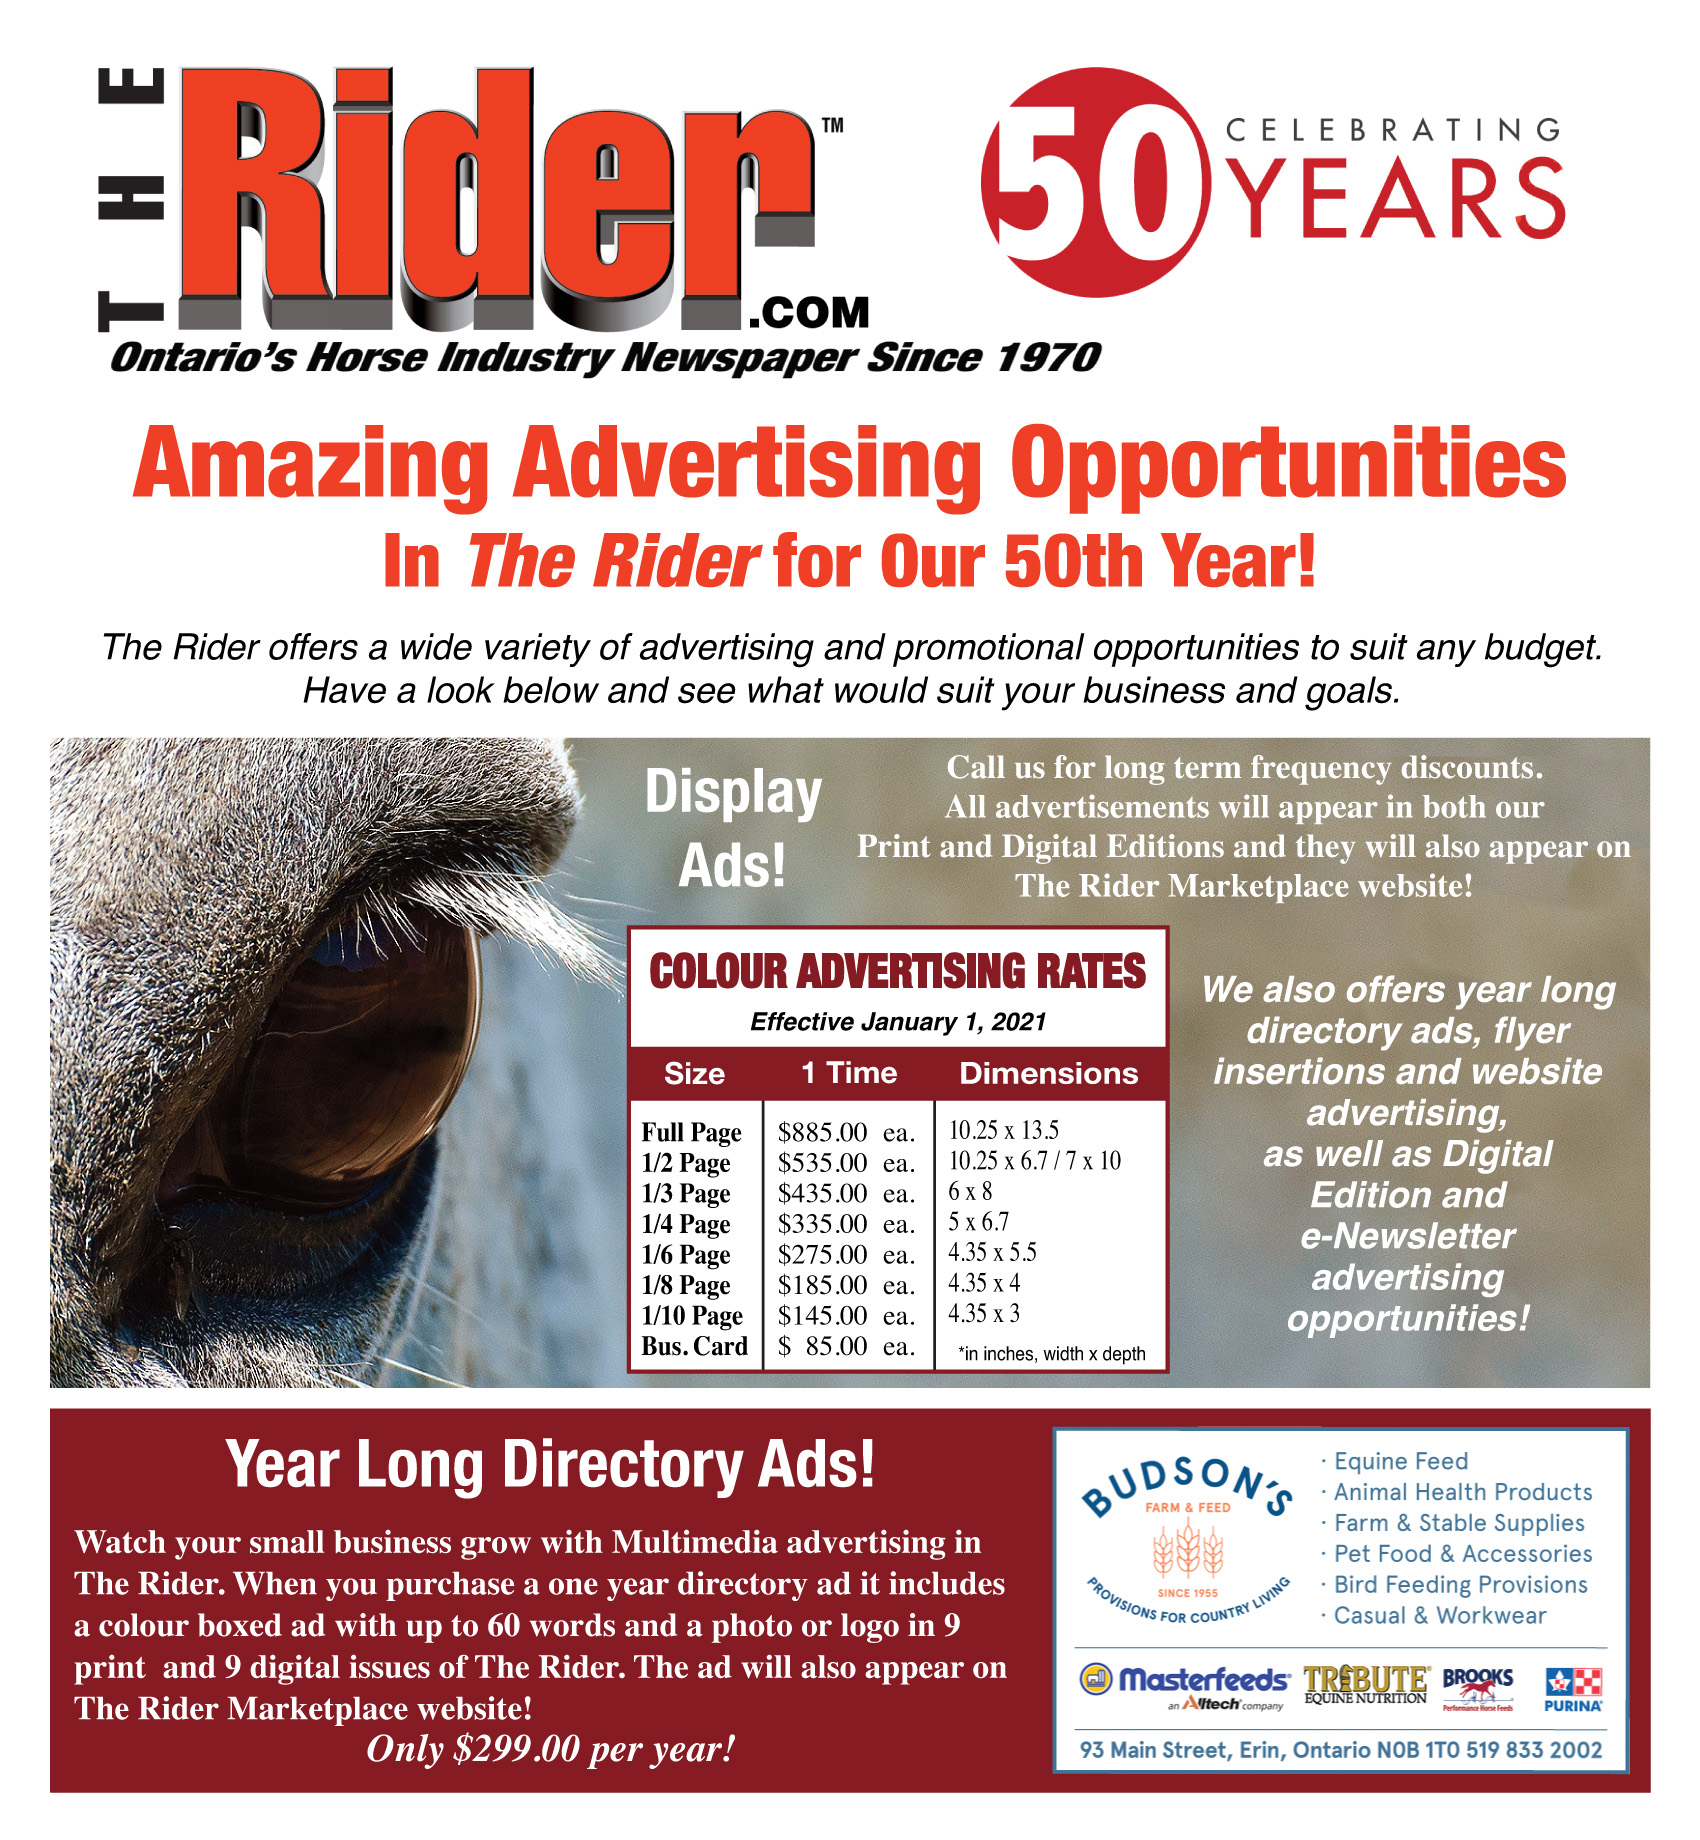 2021 TheRider.com Advertising Rate Card